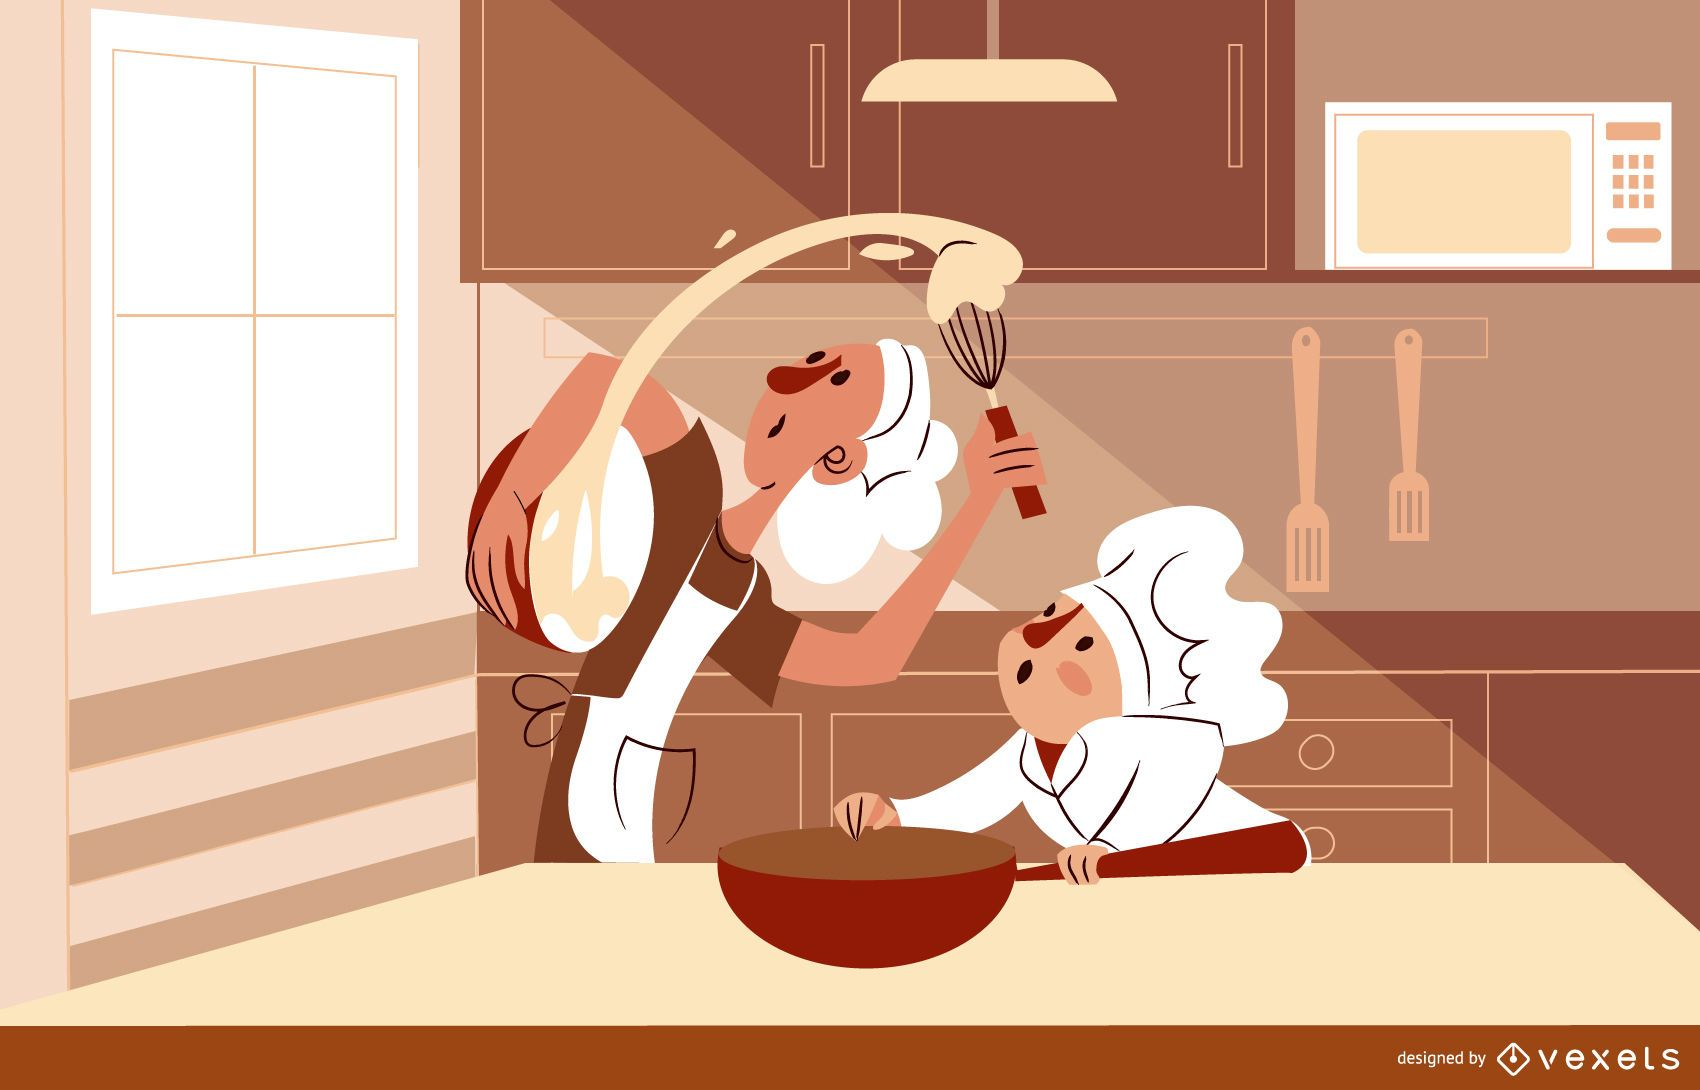 Cooking Characters in Kitchen Illustration